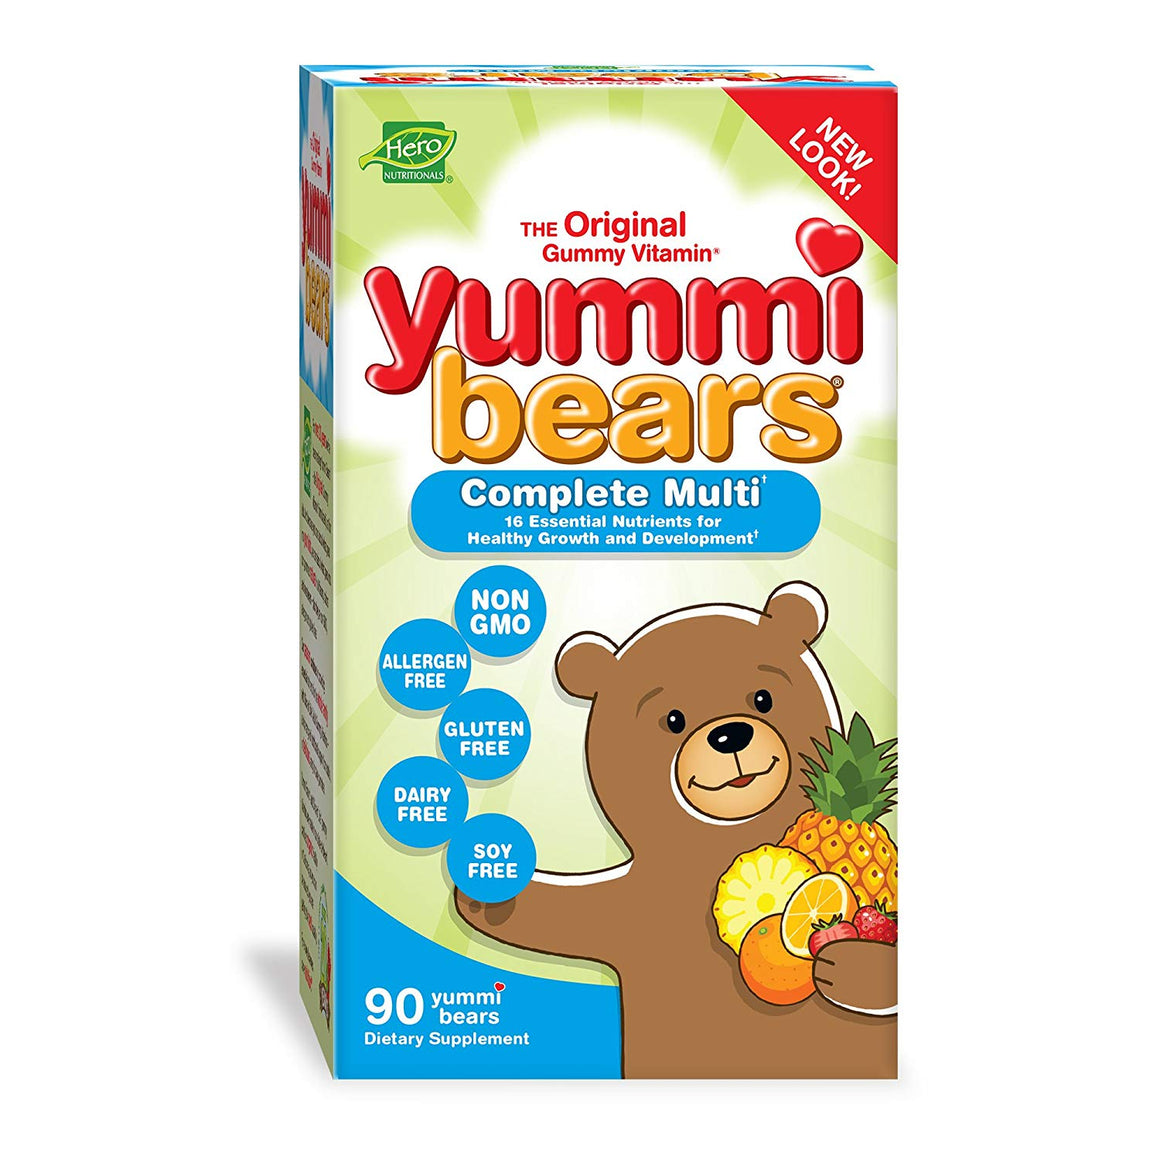 A package of Hero Nutritionals Yummi Bears Complete Multi